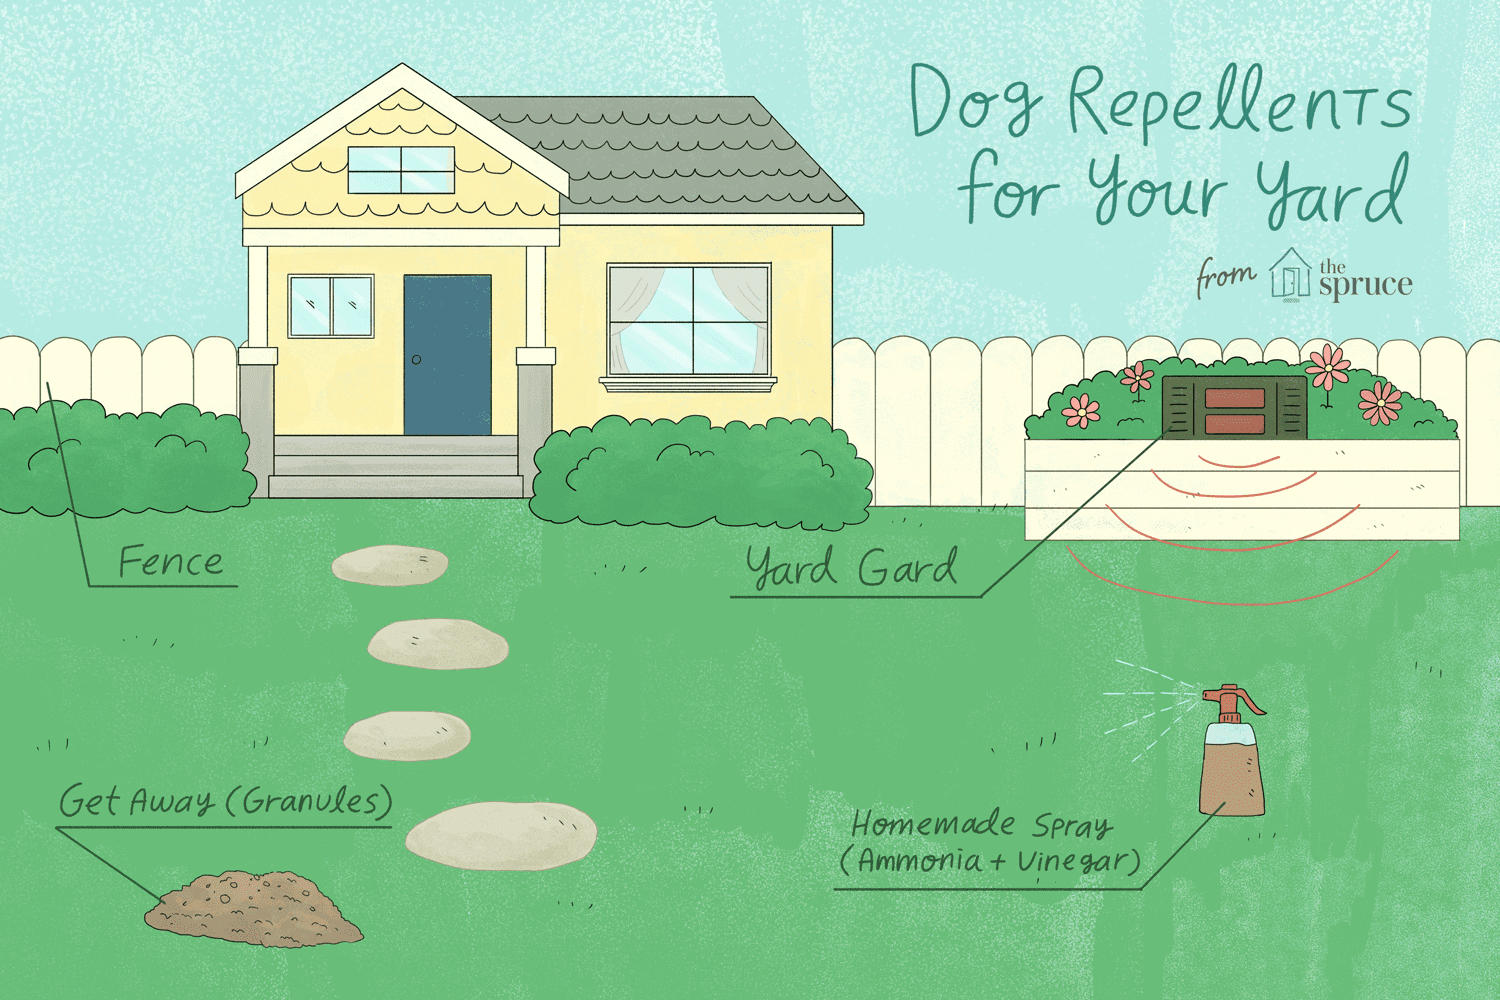 ways to repel dogs from your yard